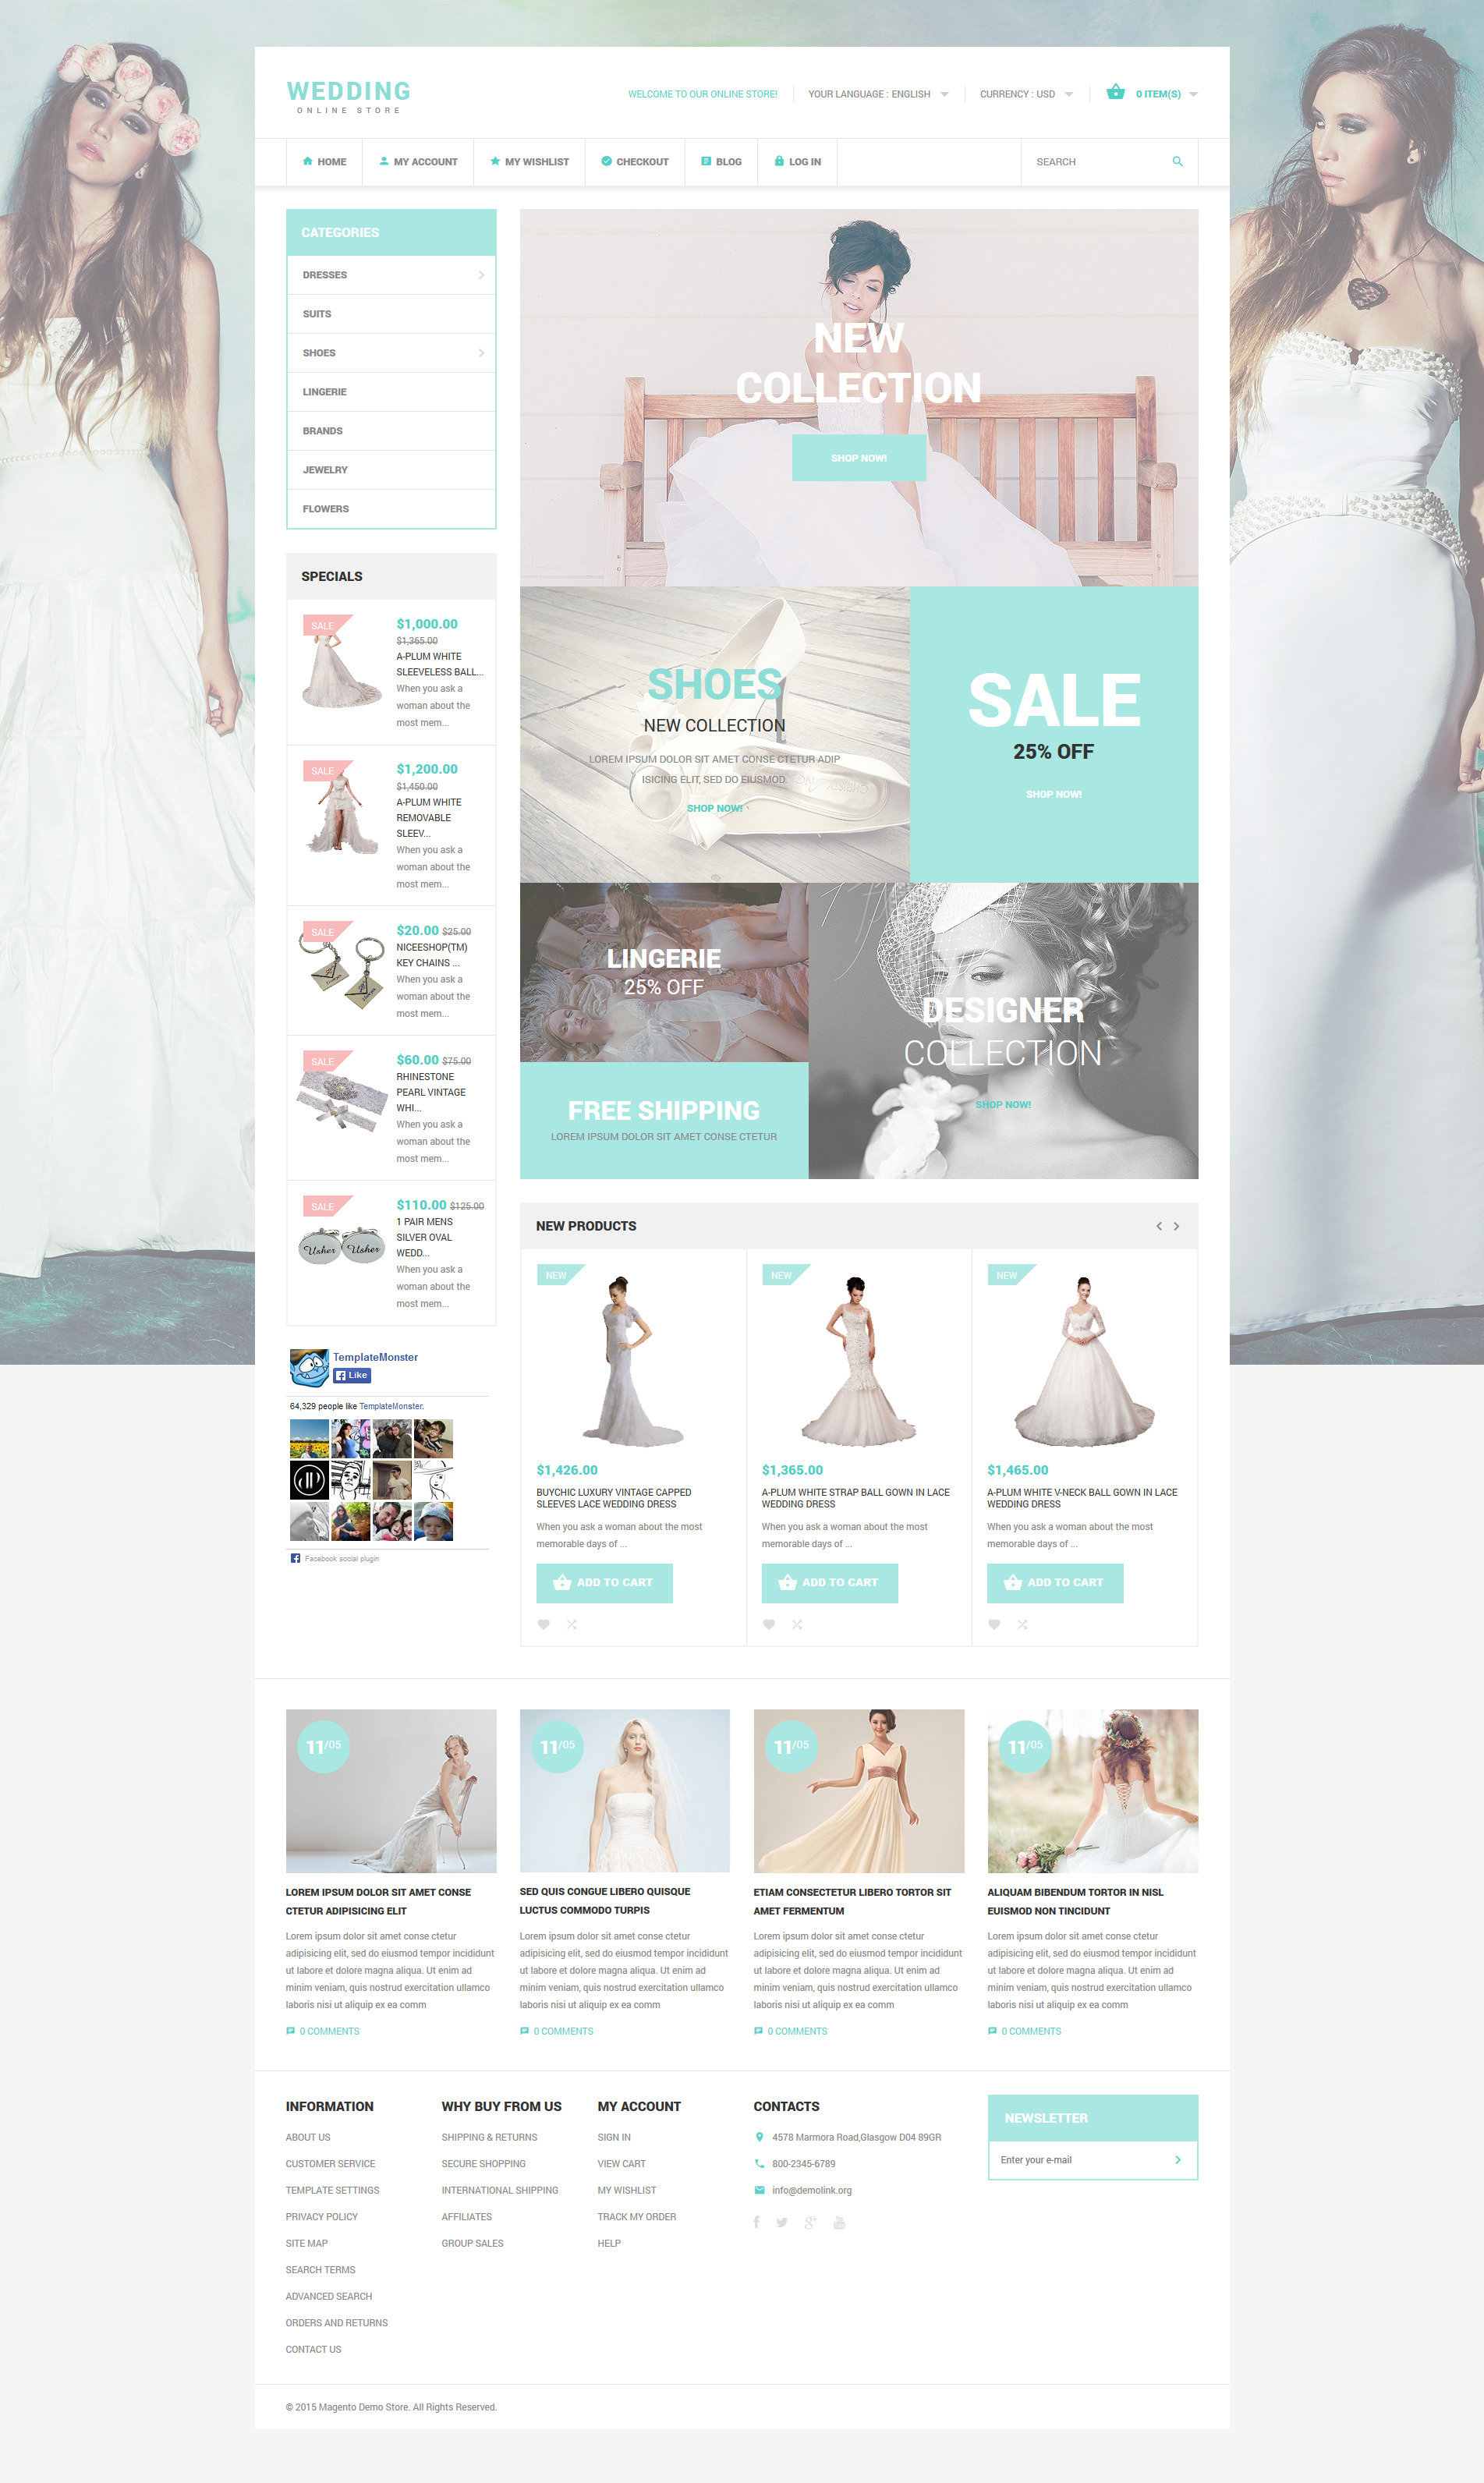 The Wedding Online Store Magento Design 53962, one of the best Magento themes of its kind (wedding, most popular), also known as wedding online store Magento template, reception Magento template, bridal Magento template, ceremony Magento template, gifts Magento template, jewel Magento template, specials Magento template, offers Magento template, rings Magento template, flowers Magento template, bouquet designers Magento template, candles Magento template, glasses Magento template, decoration Magento template, style Magento template, accessories Magento template, crown Magento template, tiara Magento template, gown Magento template, veil Magento template, dress Magento template, collection Magento template, couple Magento template, fiancee Magento template, marriage Magento template, bridegroom Magento template, husband Magento template, wife Magento template, match and related with wedding online store, reception, bridal, ceremony, gifts, jewel, specials, offers, rings, flowers, bouquet designers, candles, glasses, decoration, style, accessories, crown, tiara, gown, veil, dress, collection, couple, fiancee, marriage, bridegroom, husband, wife, match, etc.